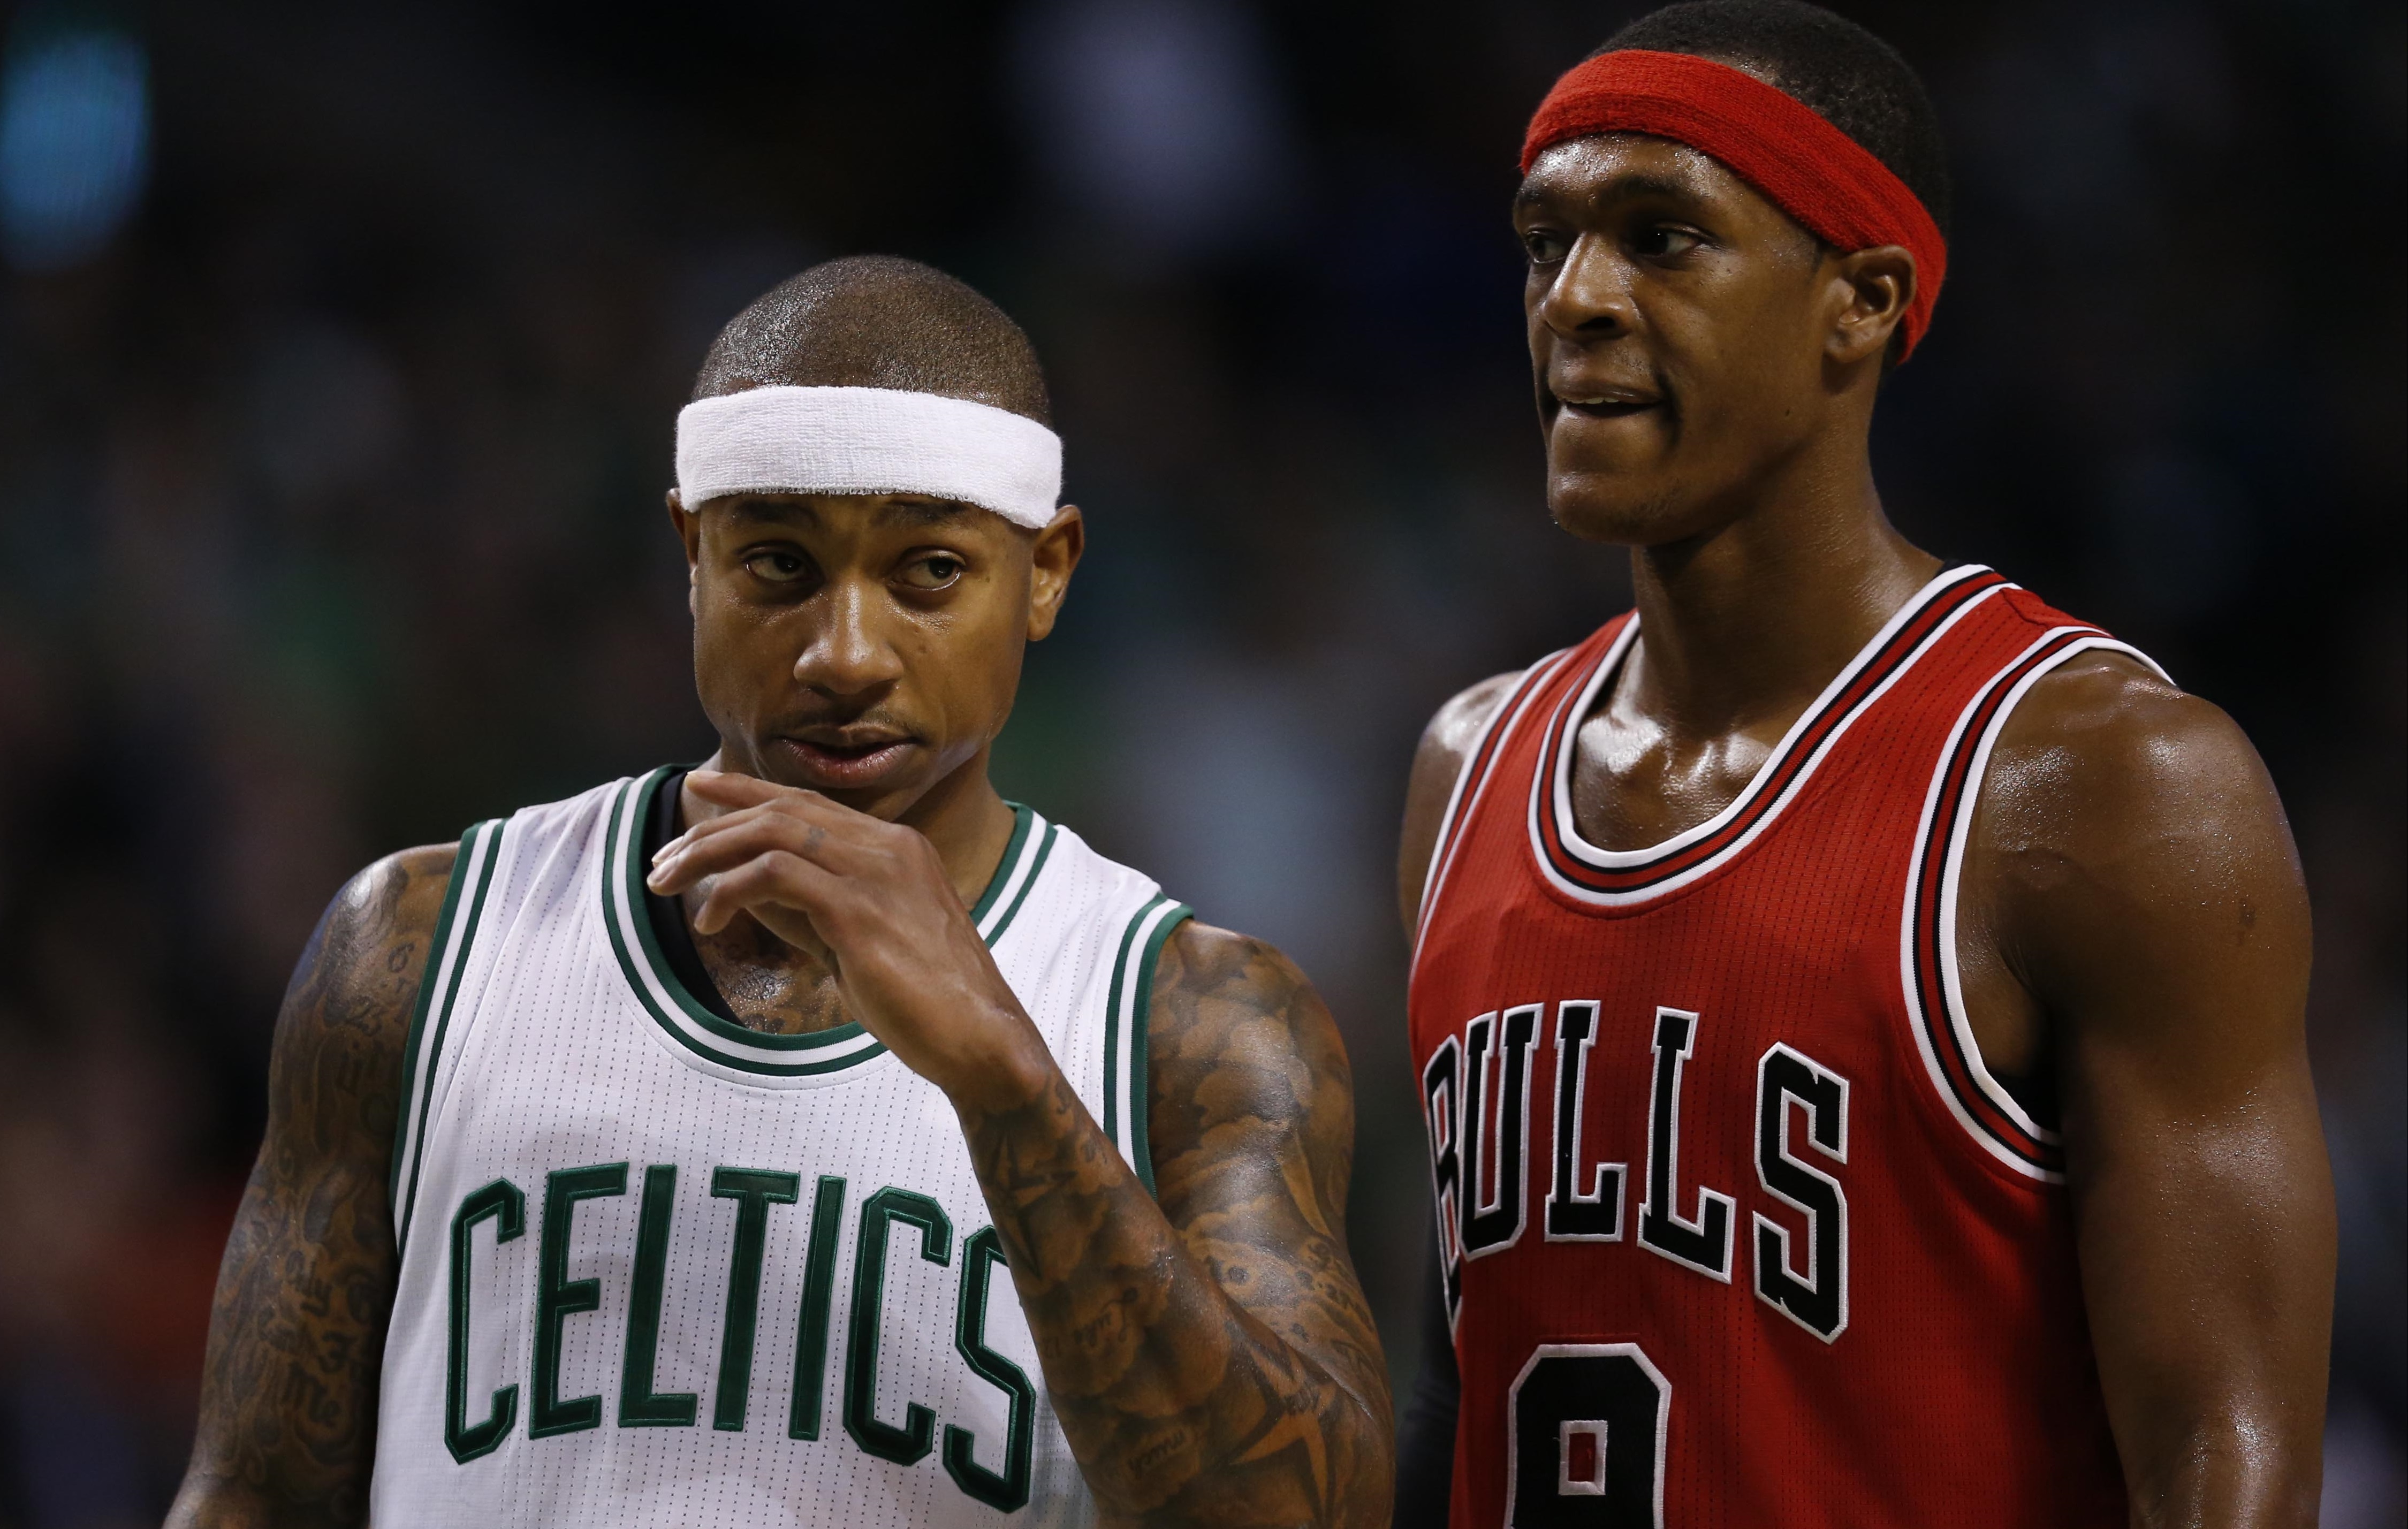 Nov 2, 2016; Boston, MA, USA;  Boston Celtics point guard Isaiah Thomas (4) and Chicago Bulls point guard Rajon Rondo (9) during the fourth quarter at TD Garden.  The Boston Celtics won 107-100. Mandatory Credit: Greg M. Cooper-USA TODAY Sports